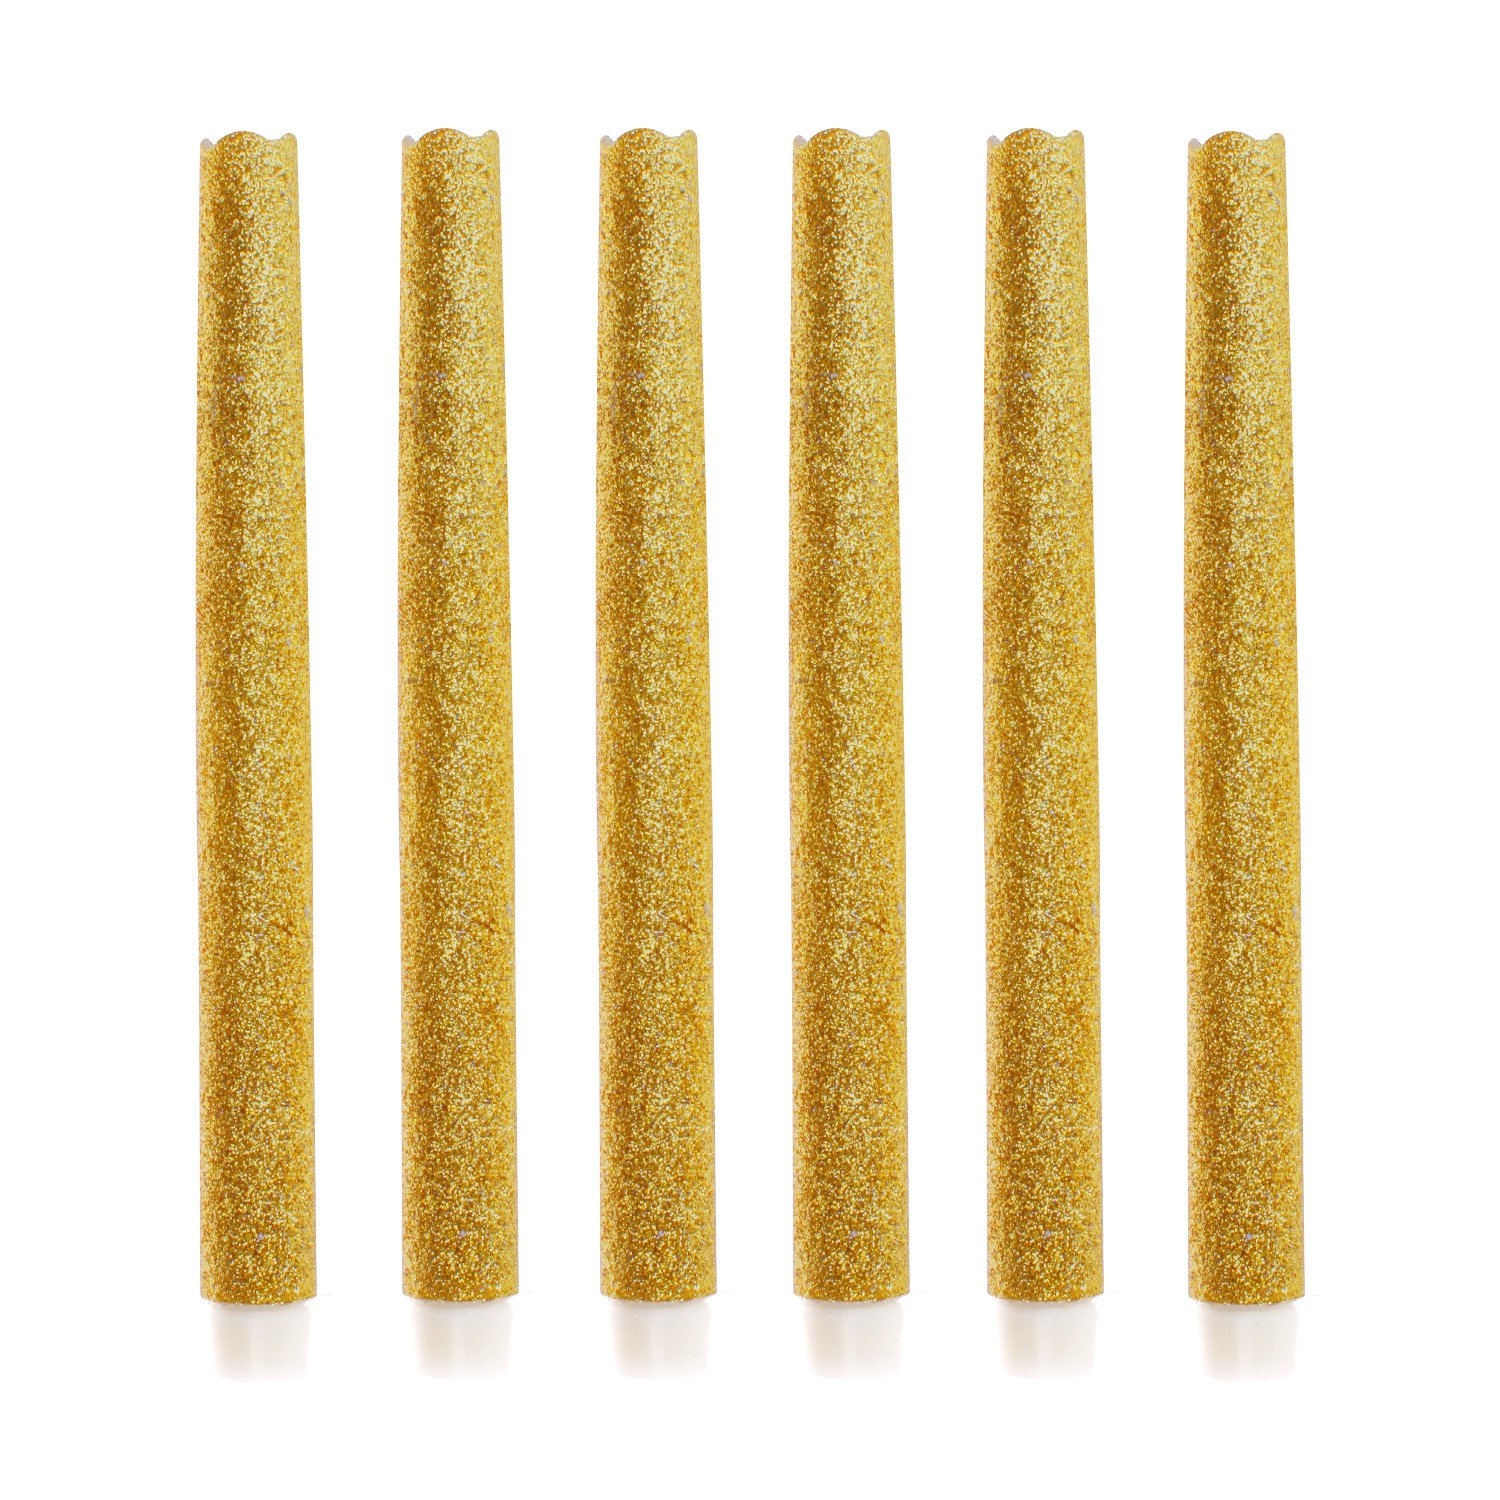 9'' Set of 6 Flameless Led Taper Candles with Timer, Battery Operated Candle with Gold Glitter for Wedding, Halloween, Christmas Decoration